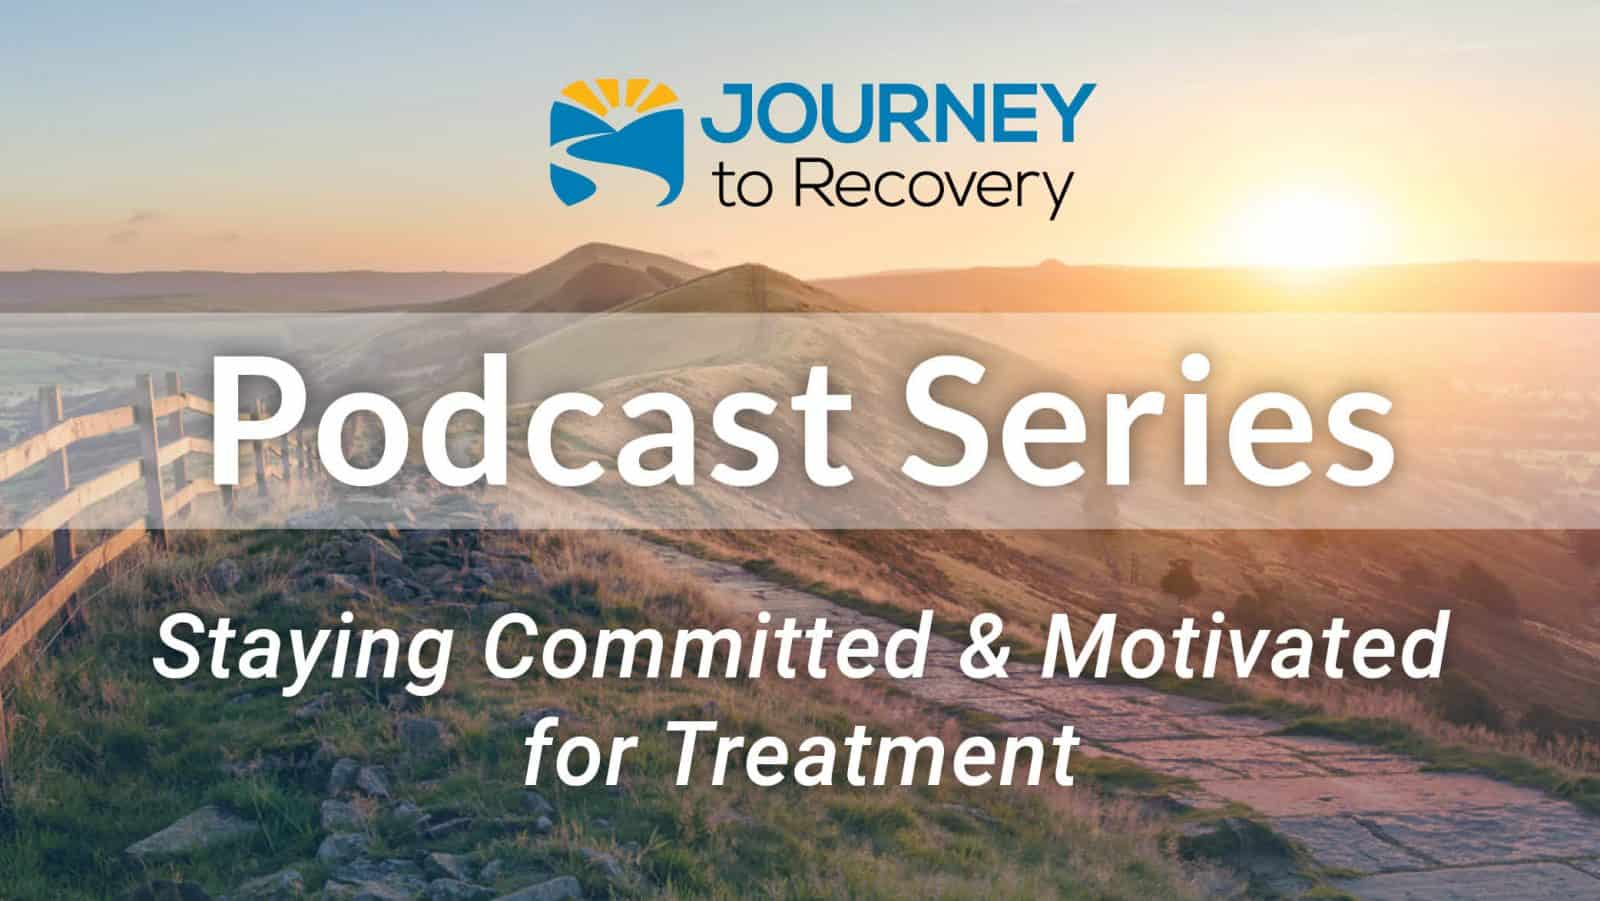 Staying Committed and Motivated for Treatment